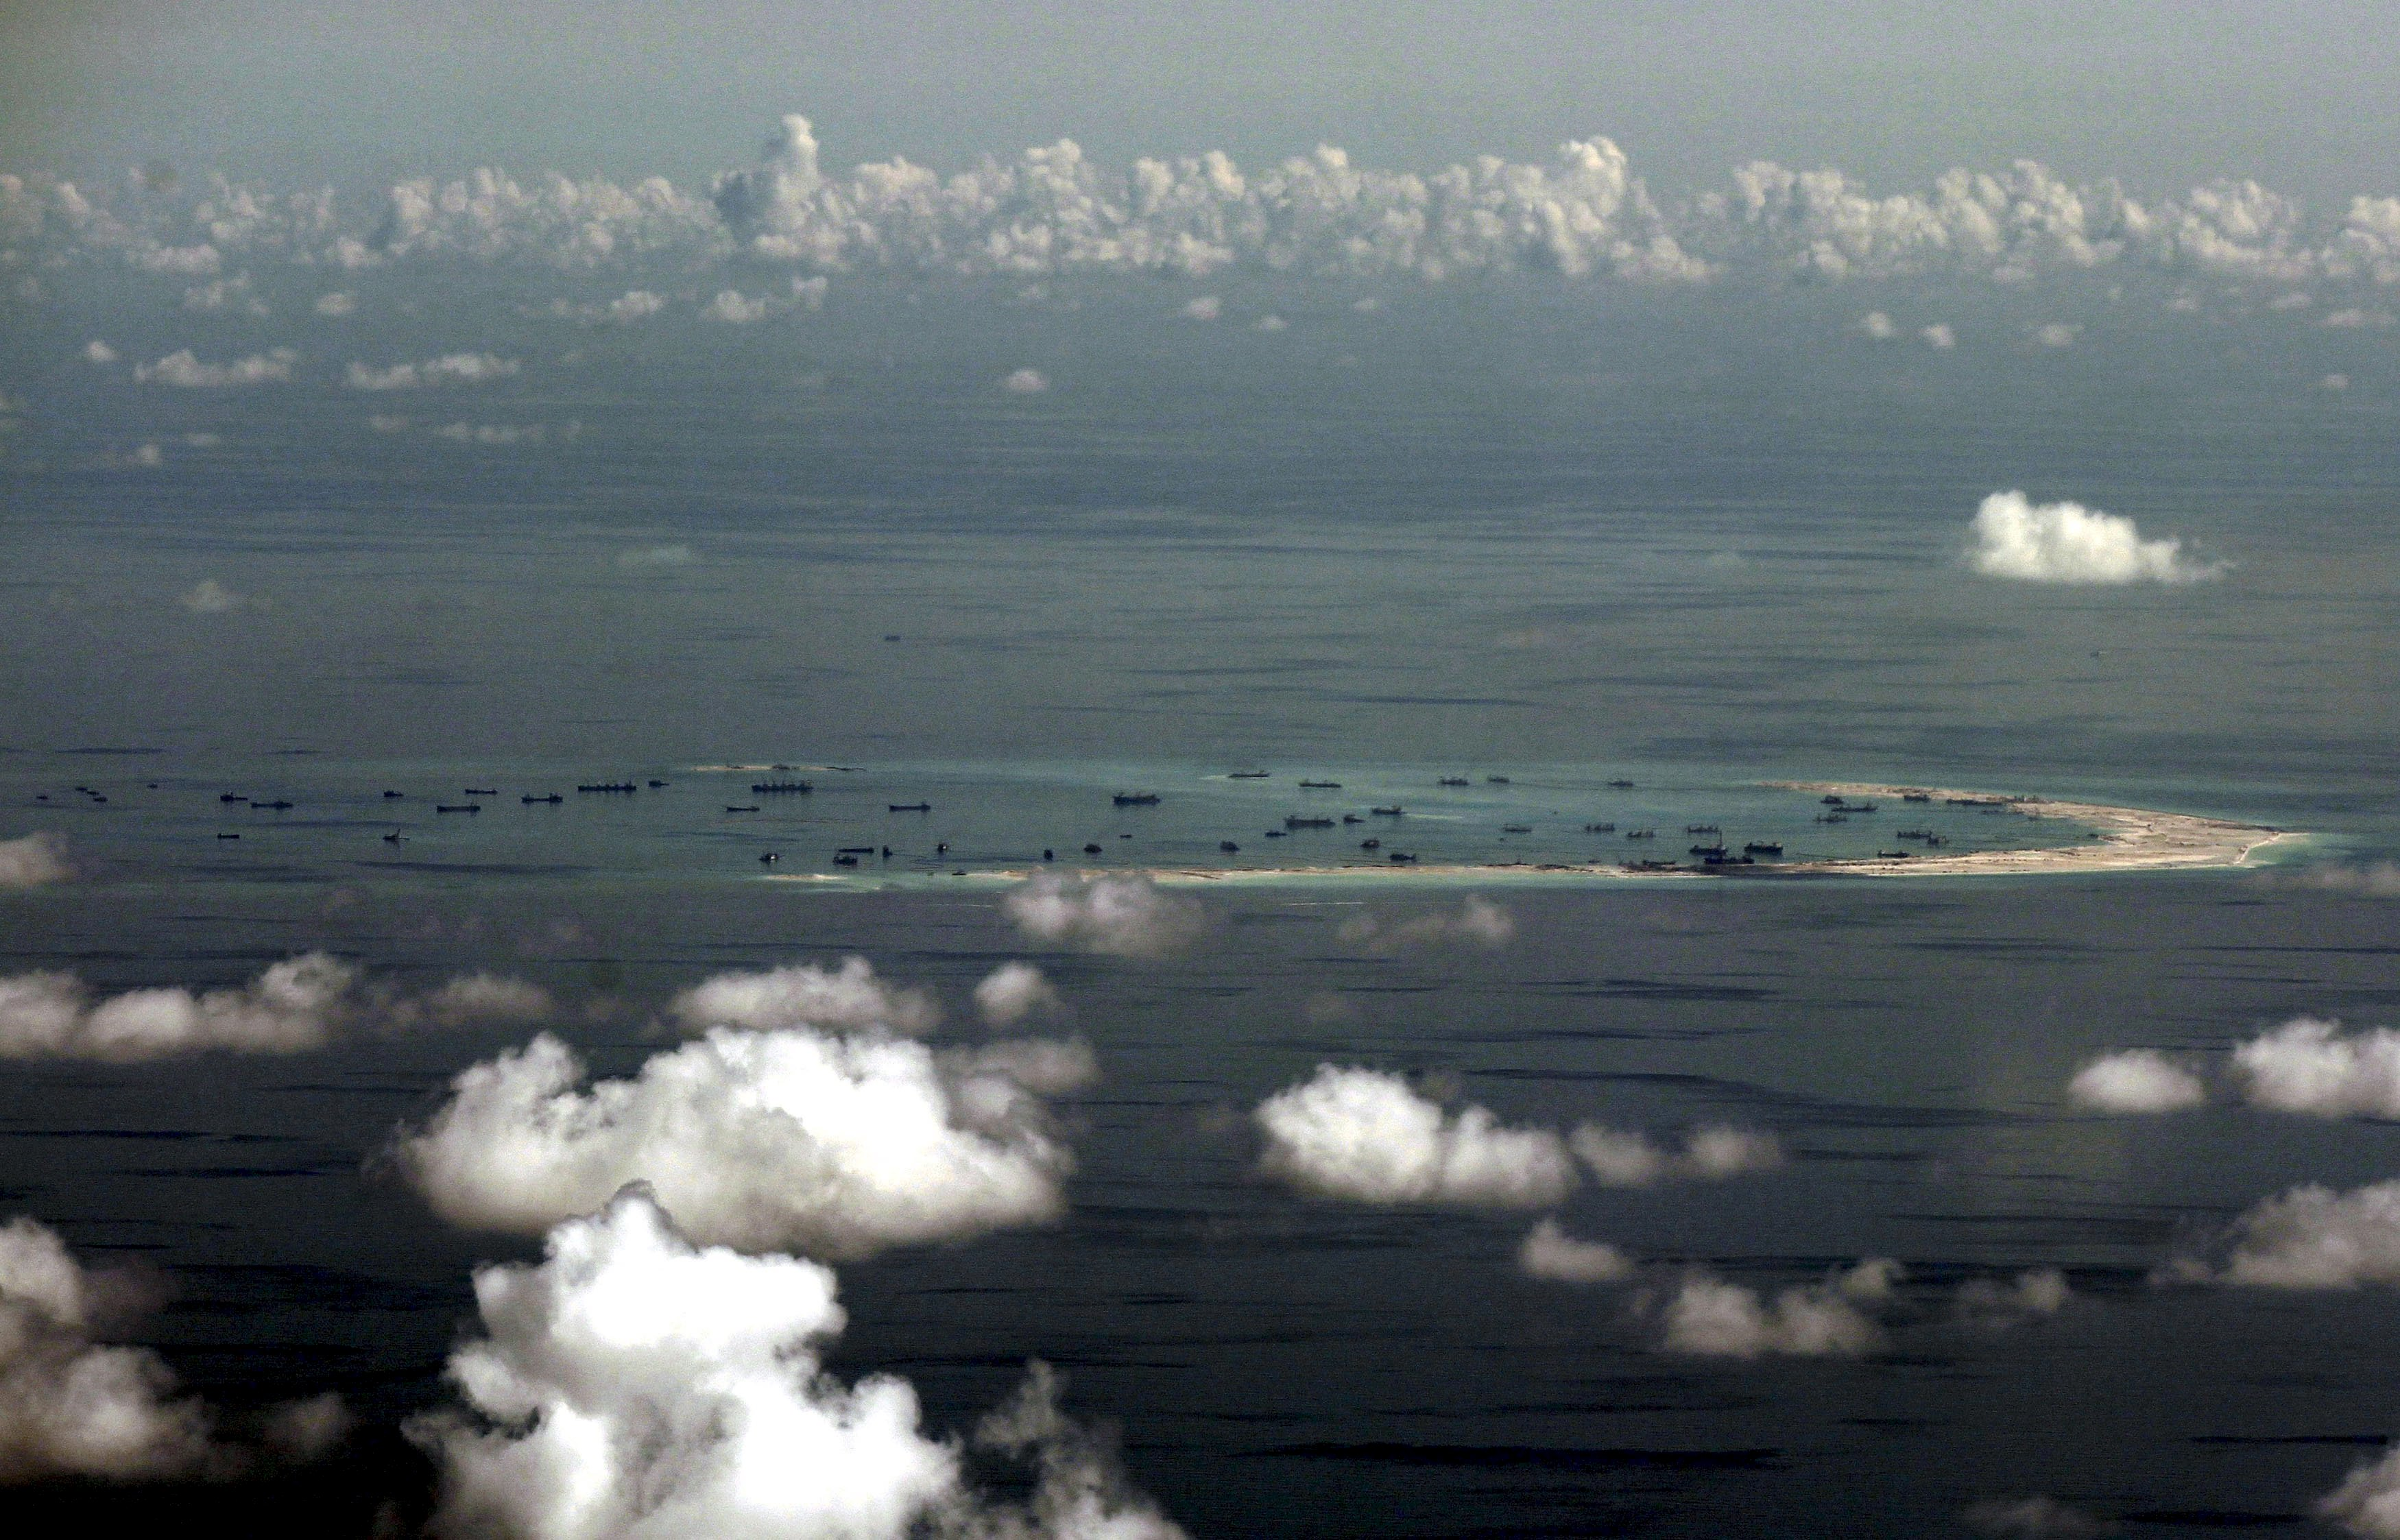 The ongoing land reclamation by China on Mischief Reef in the Spratly Islands in the South China Sea, west of Palawan, Philippines, is seen in this aerial photo taken though a glass window of a Philippine military plane in May 2015. | REUTERS